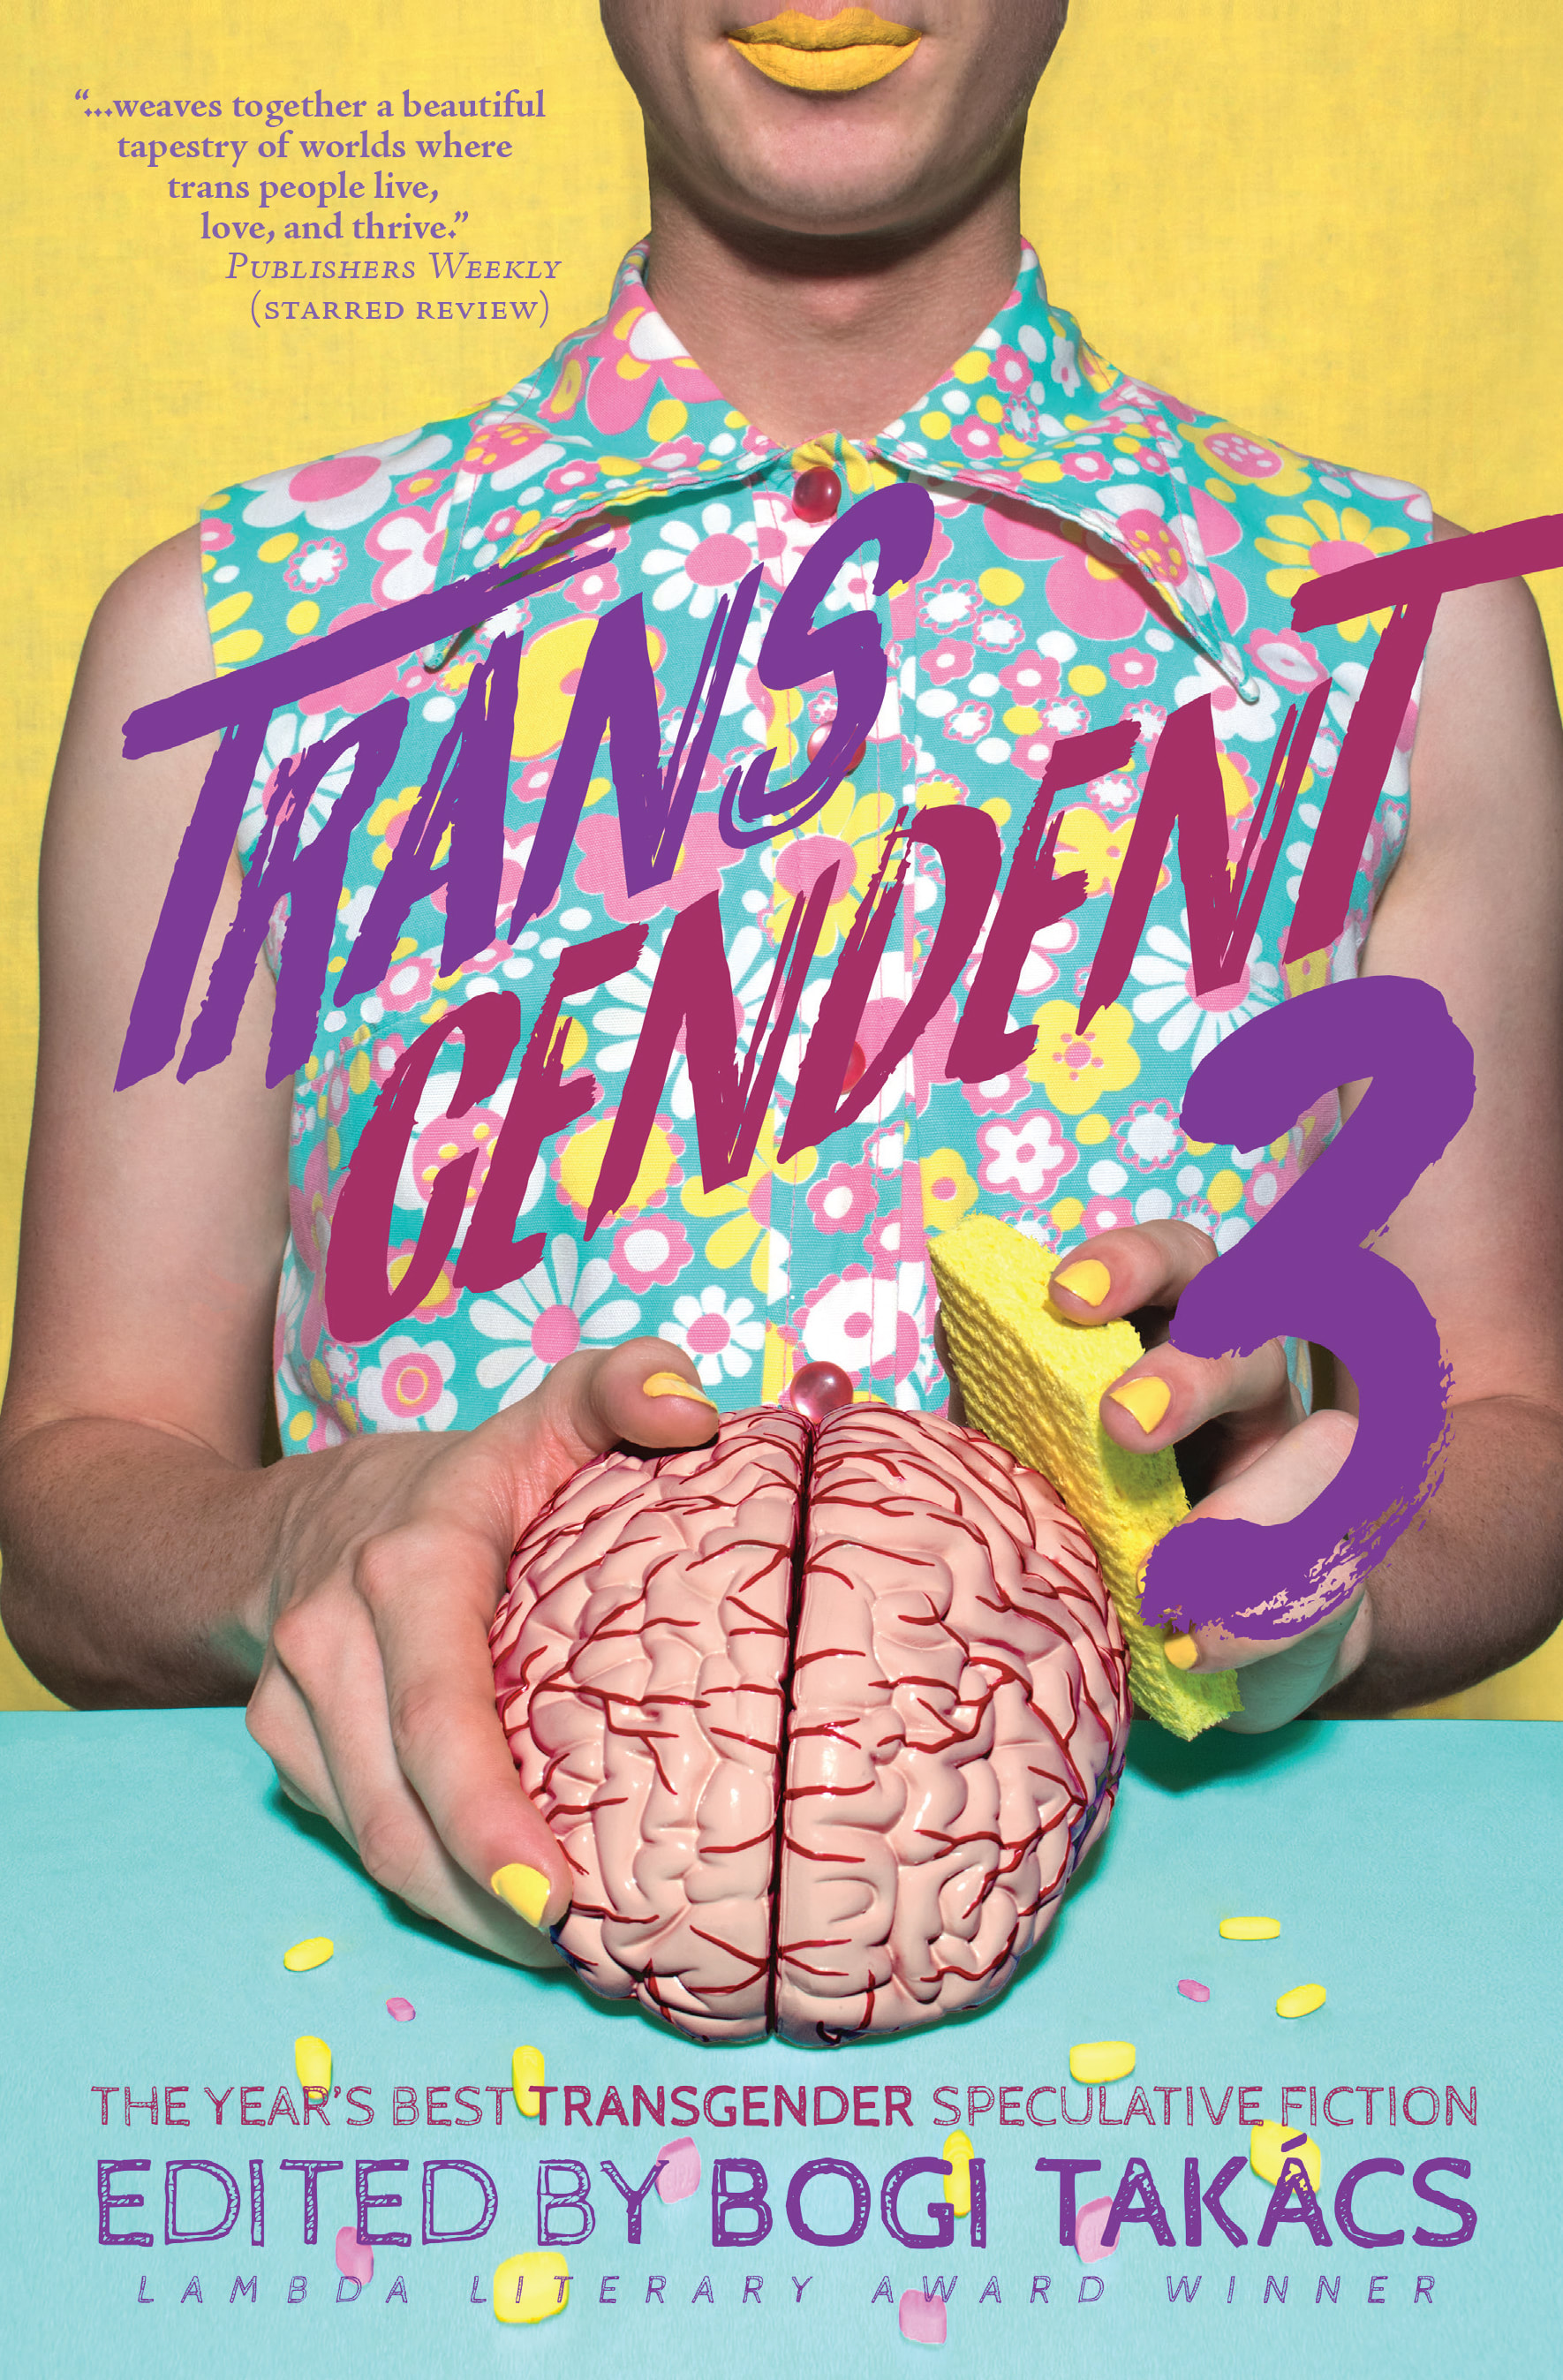 "The cover of Transcendent 3, showing a person in a colorful floral shirt and yellow lipstick washing a brain with a sponge with a yellow background. Text in the top left: ""...weaves together a beautiful tapestry of worlds where trans people live, love, and thrive."" - Publishers Weekly (Starred Review) Text in the center: Transcendent 3 Text on the bottom: The years best transgender speculative fiction 